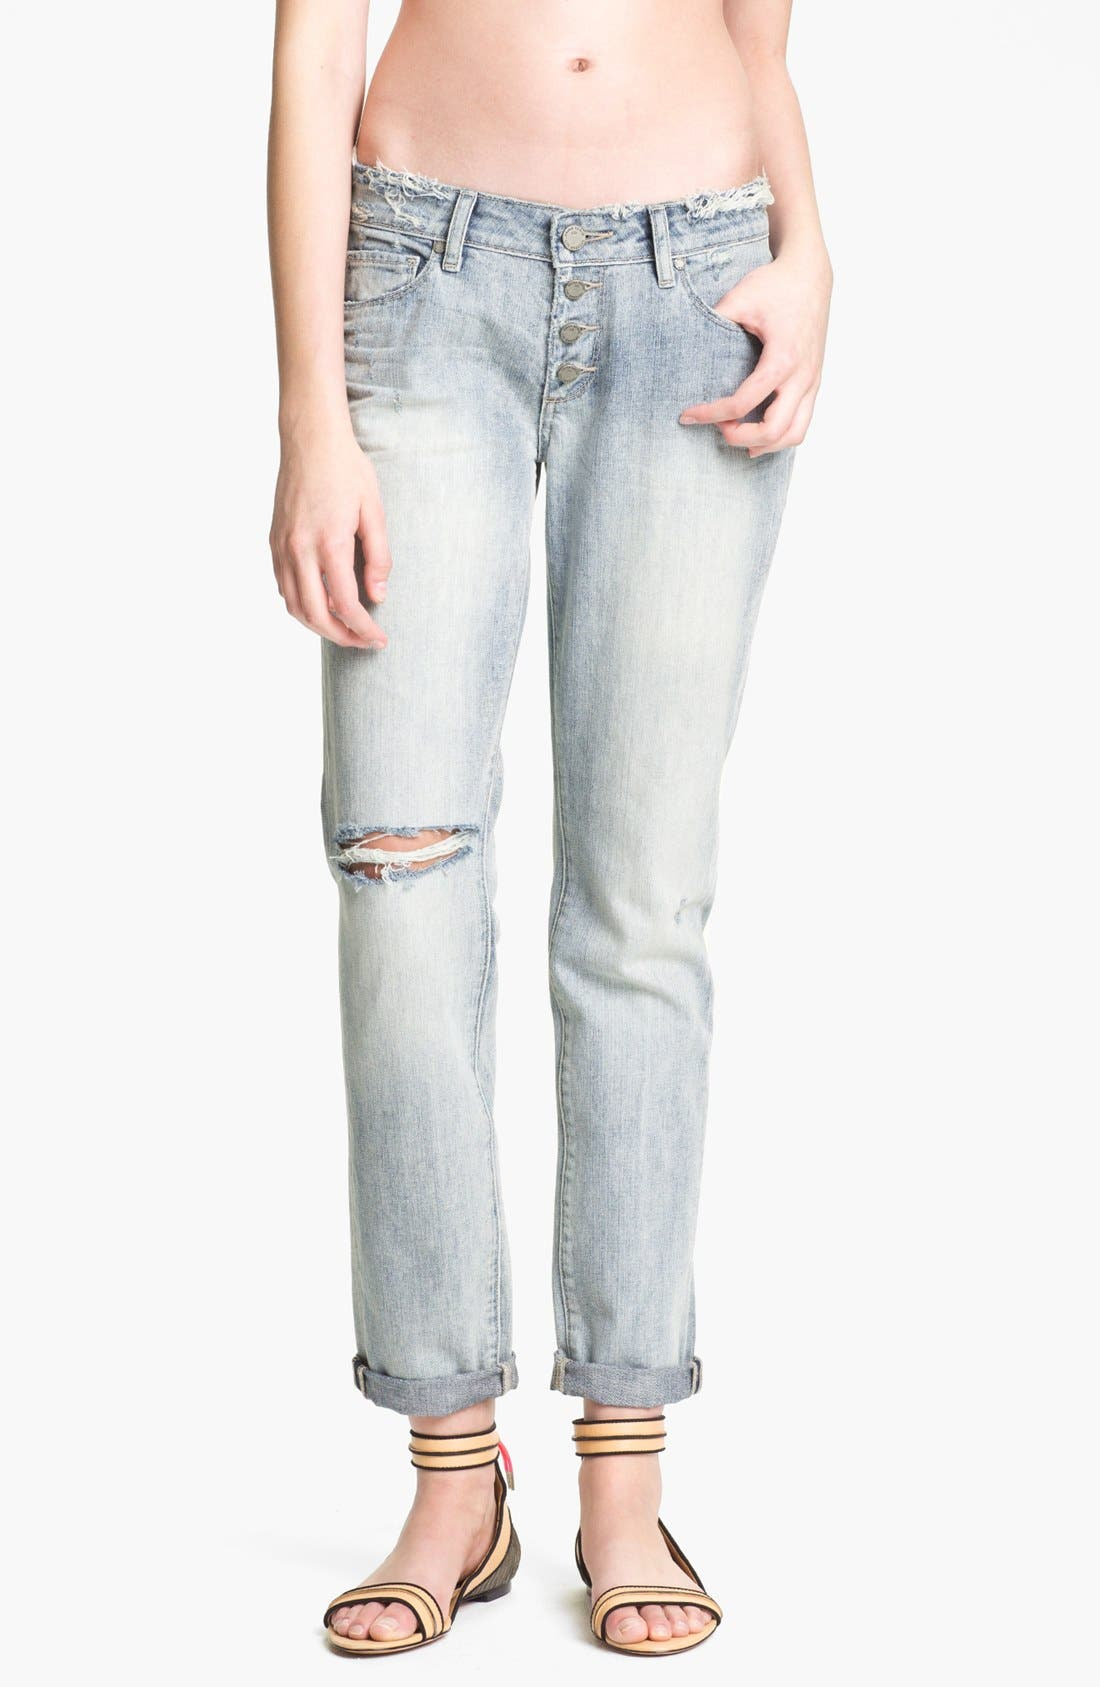 Main Image - Paige Denim 'Jimmy Jimmy' Destroyed Relaxed Fit Jeans (Pilot)